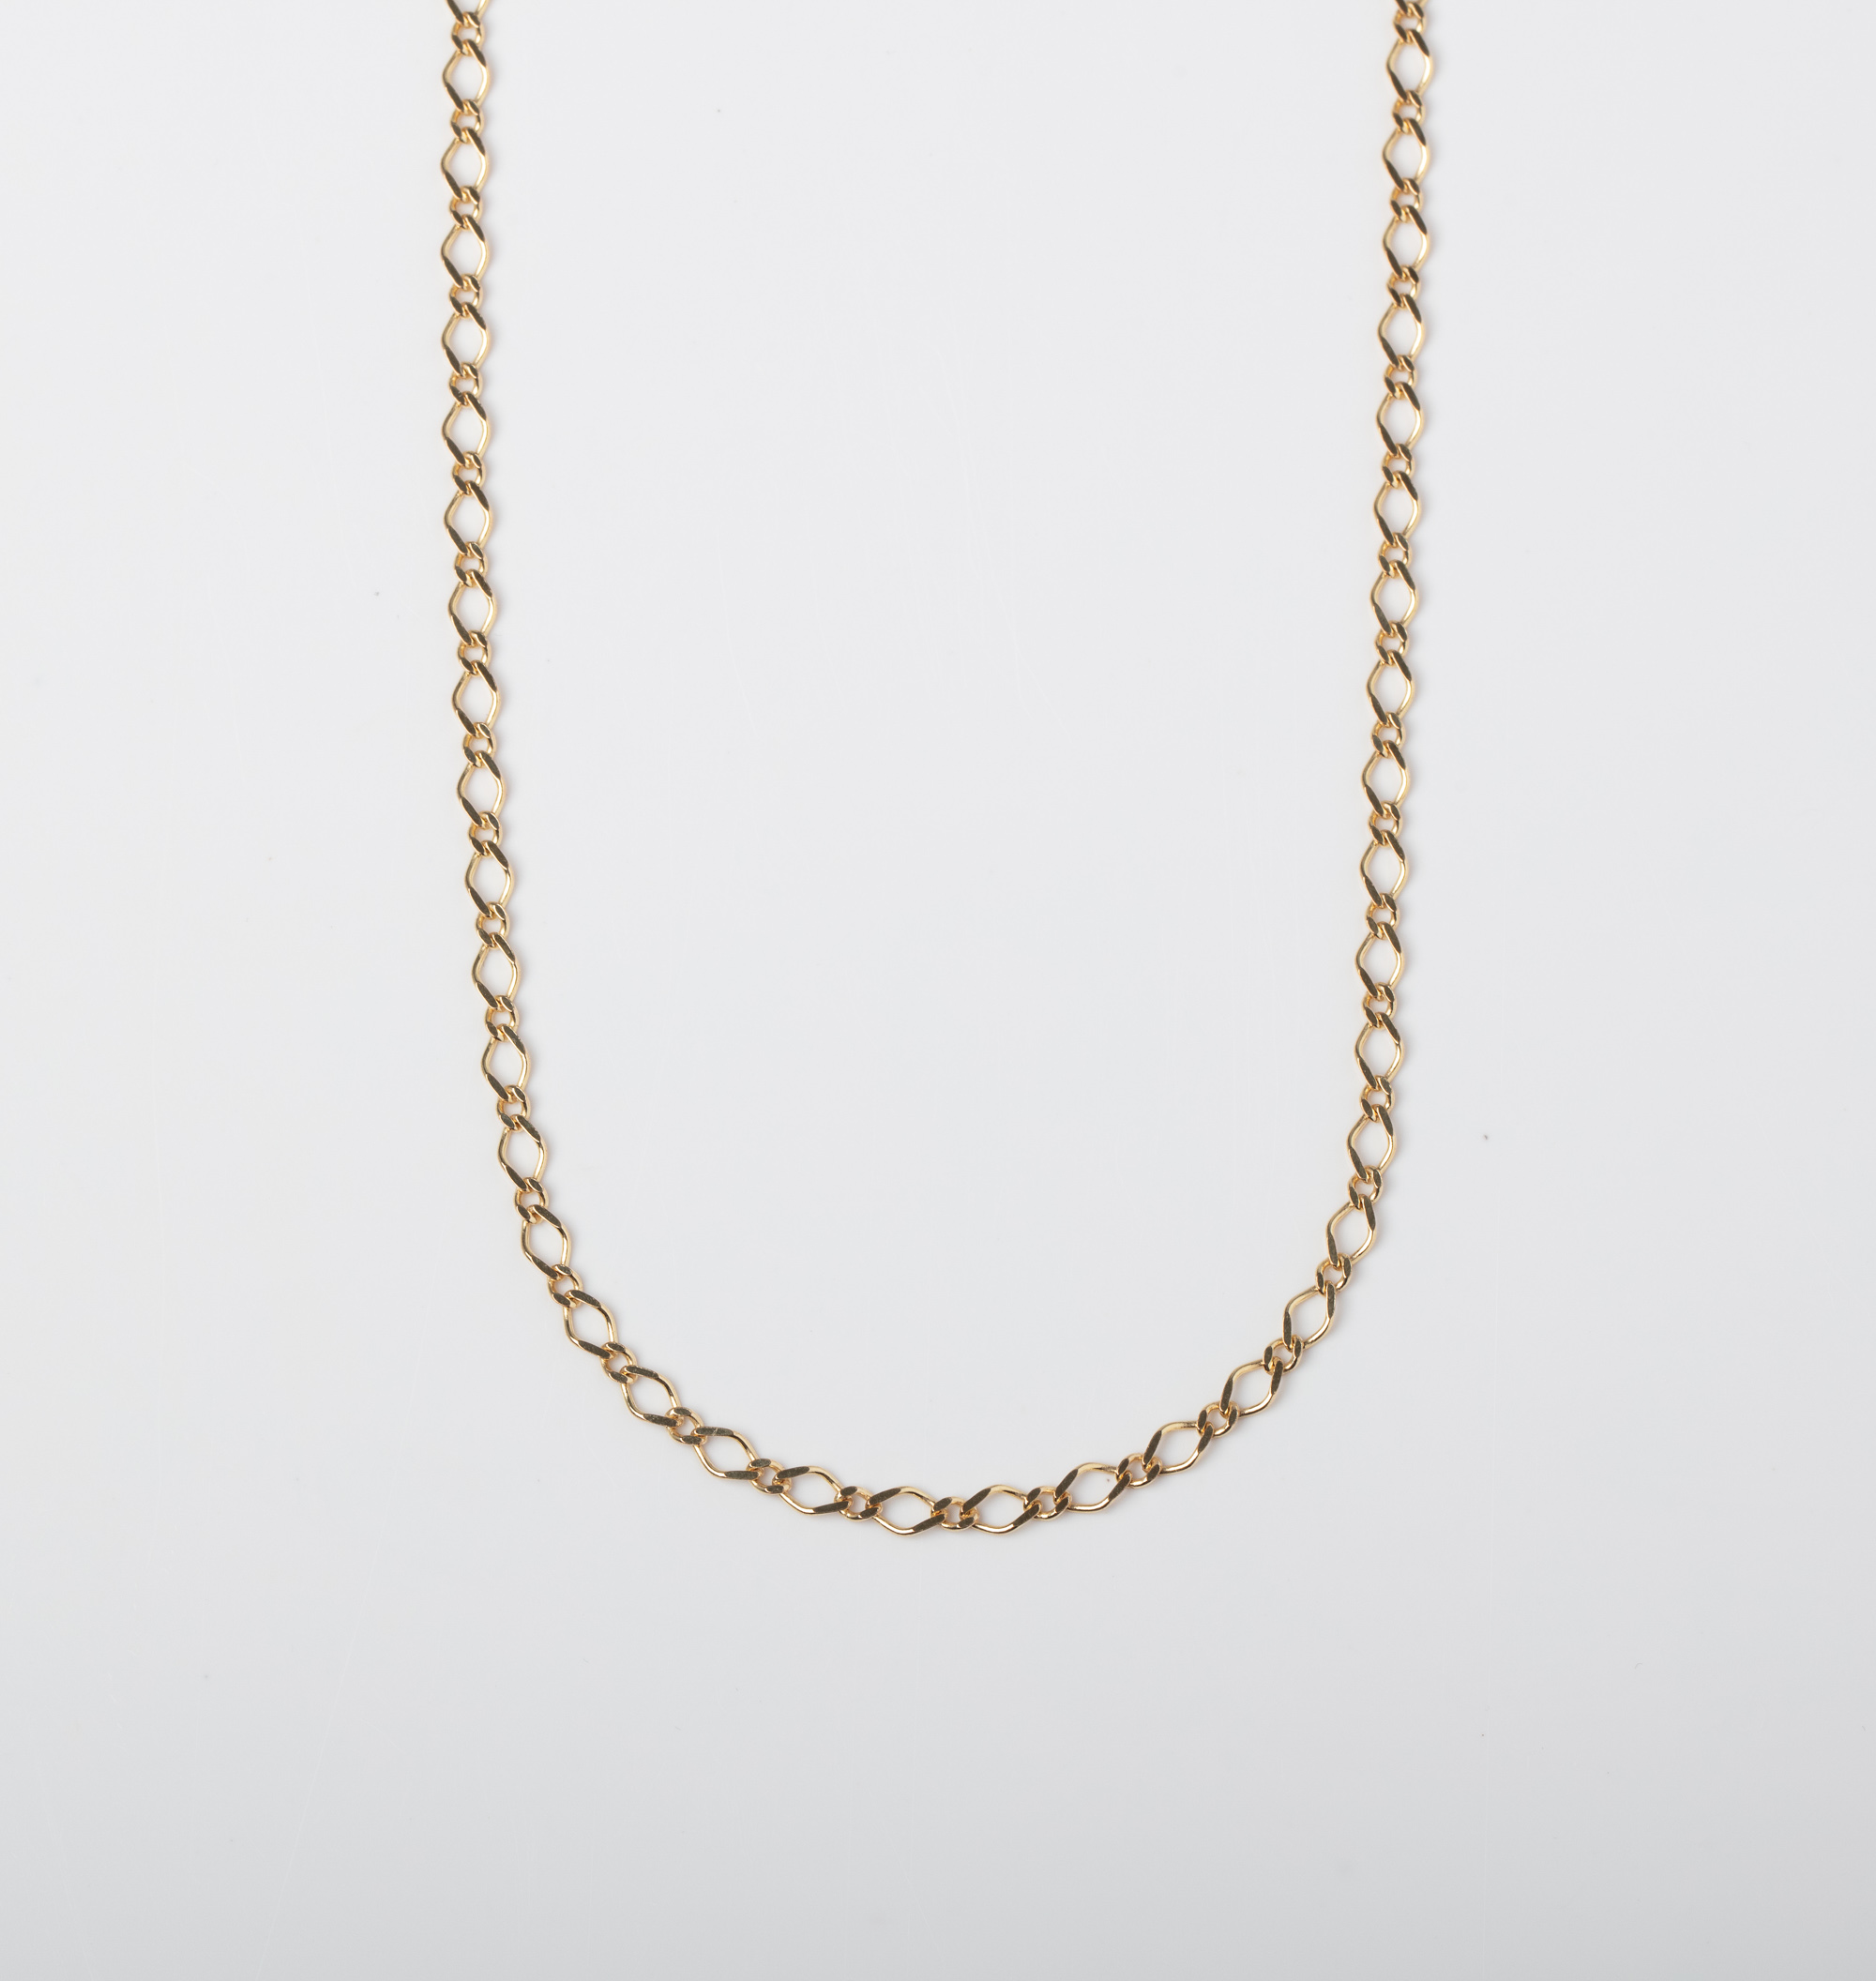 A 9CT GOLD FANCY LINK CHAIN